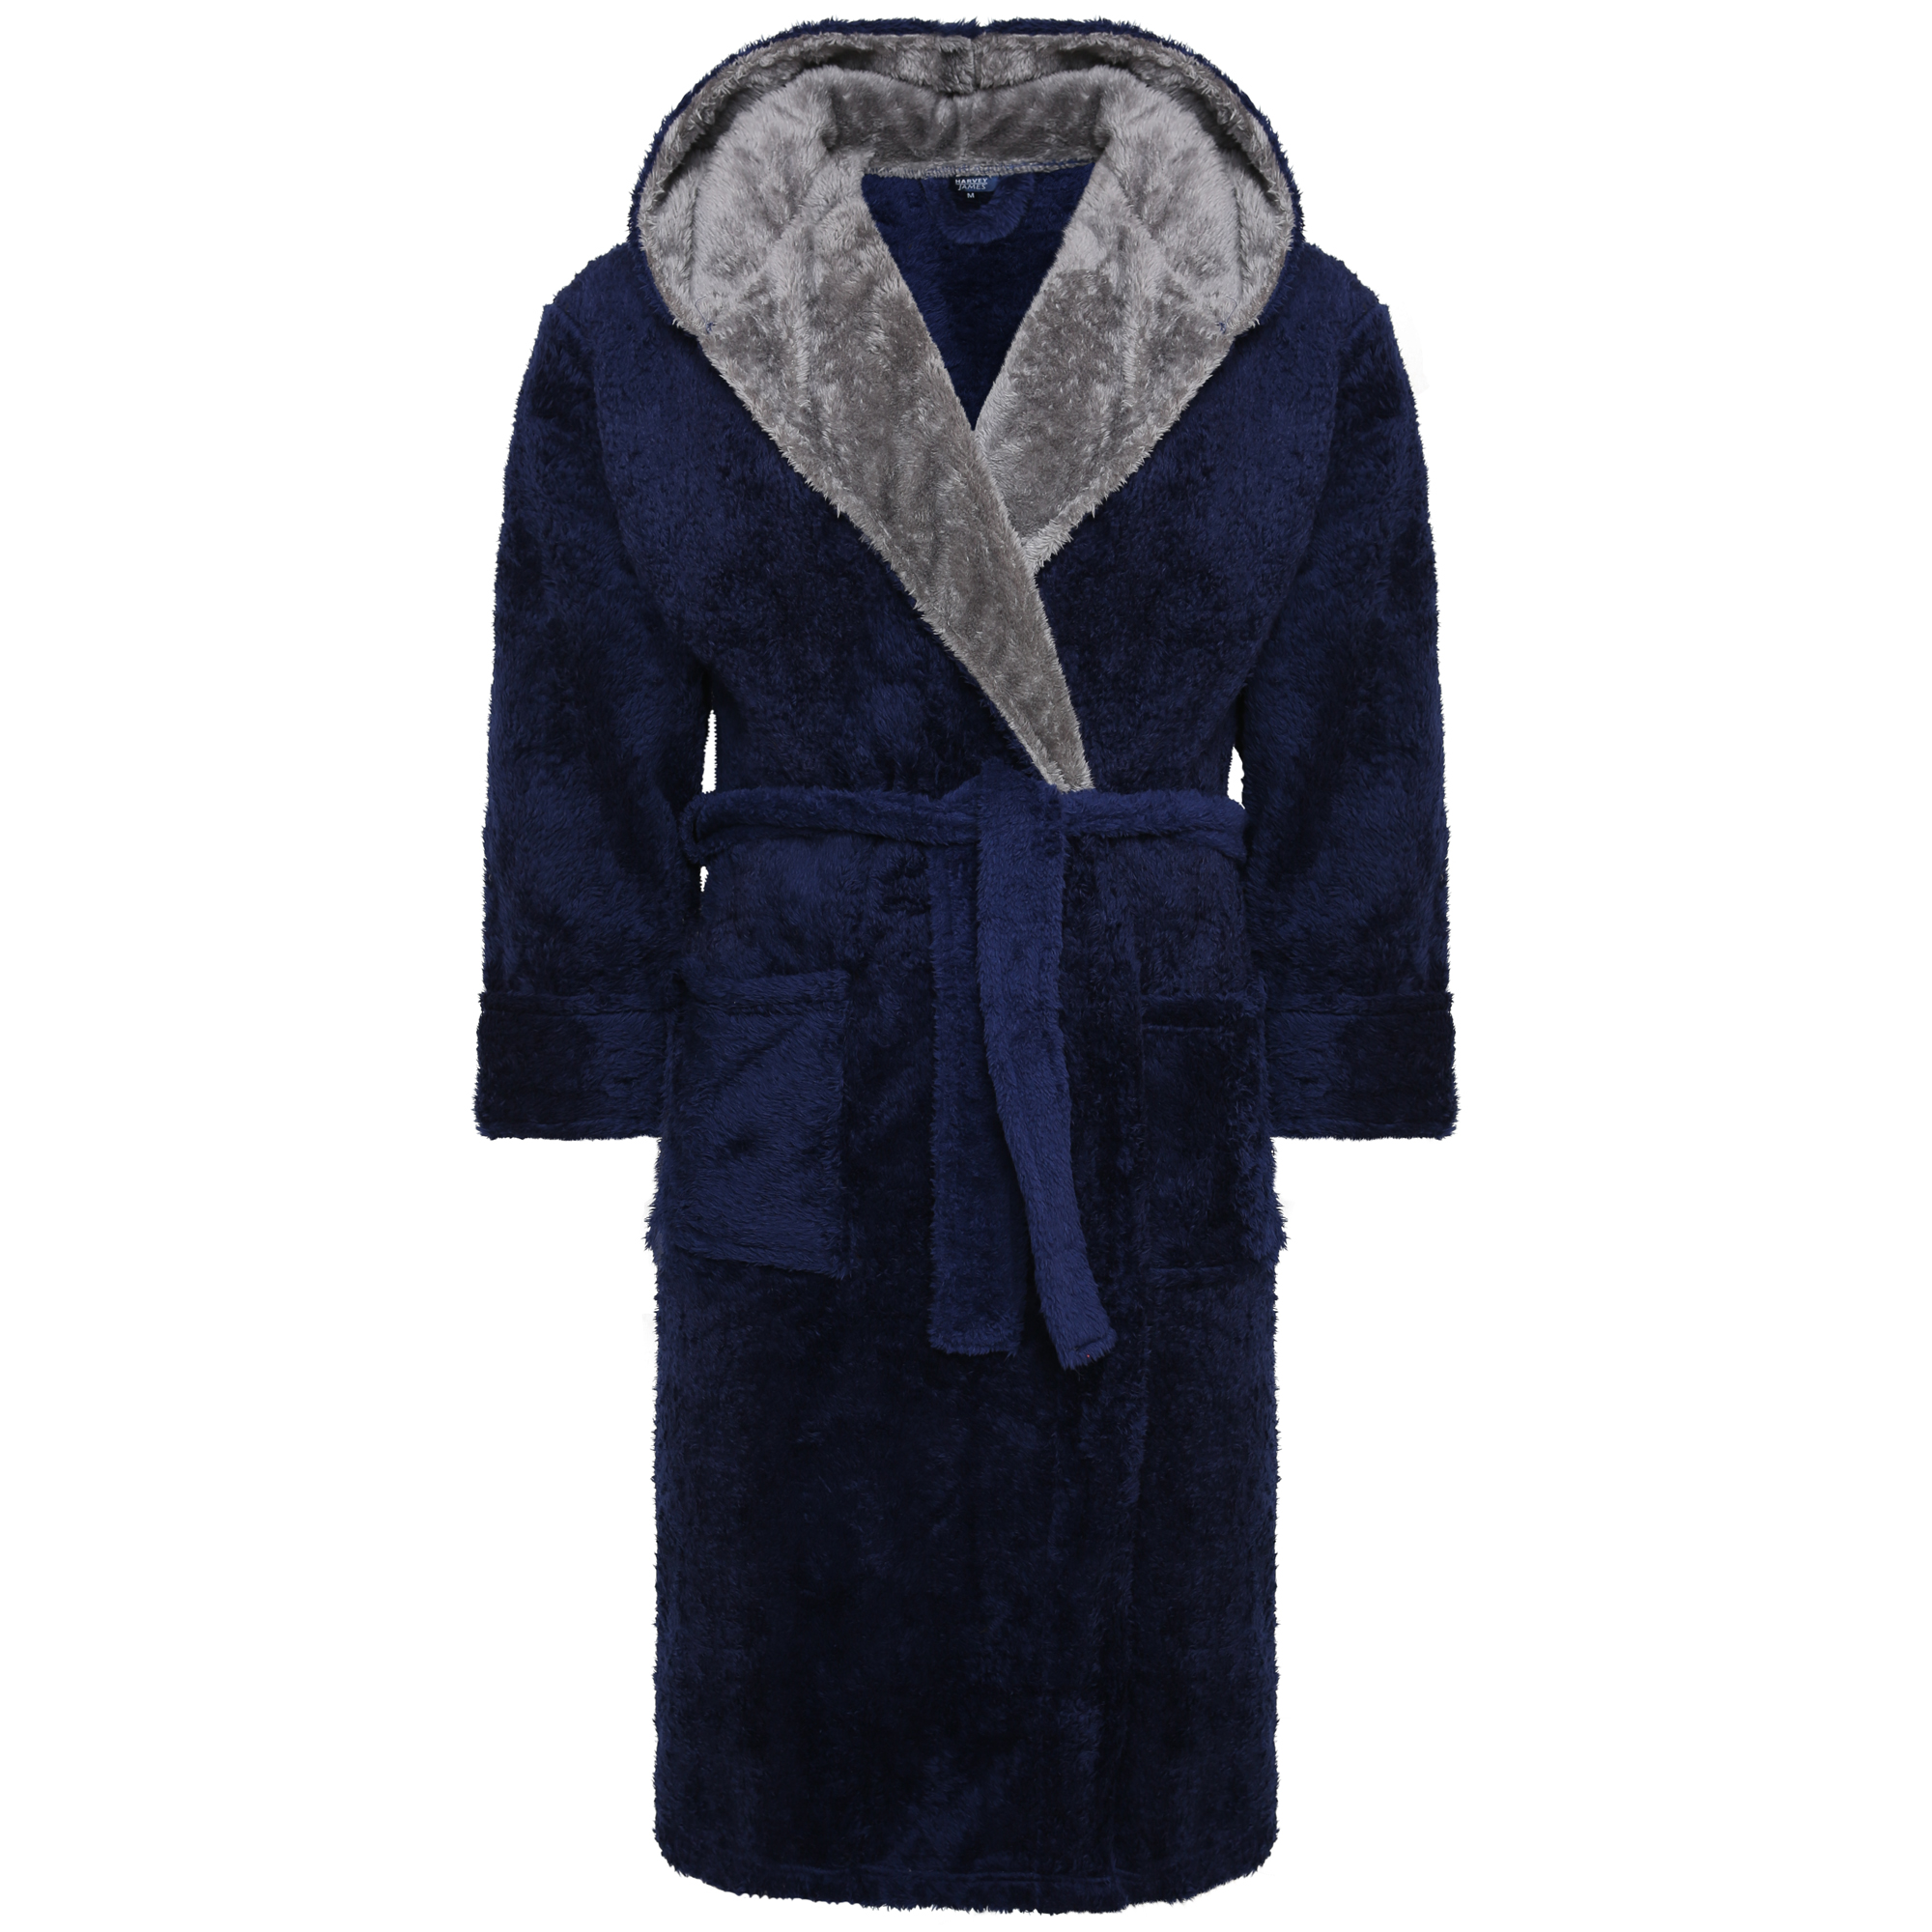 House Coat: Luxury Mens Contrast Collar Dressing Gown Bath Robe House